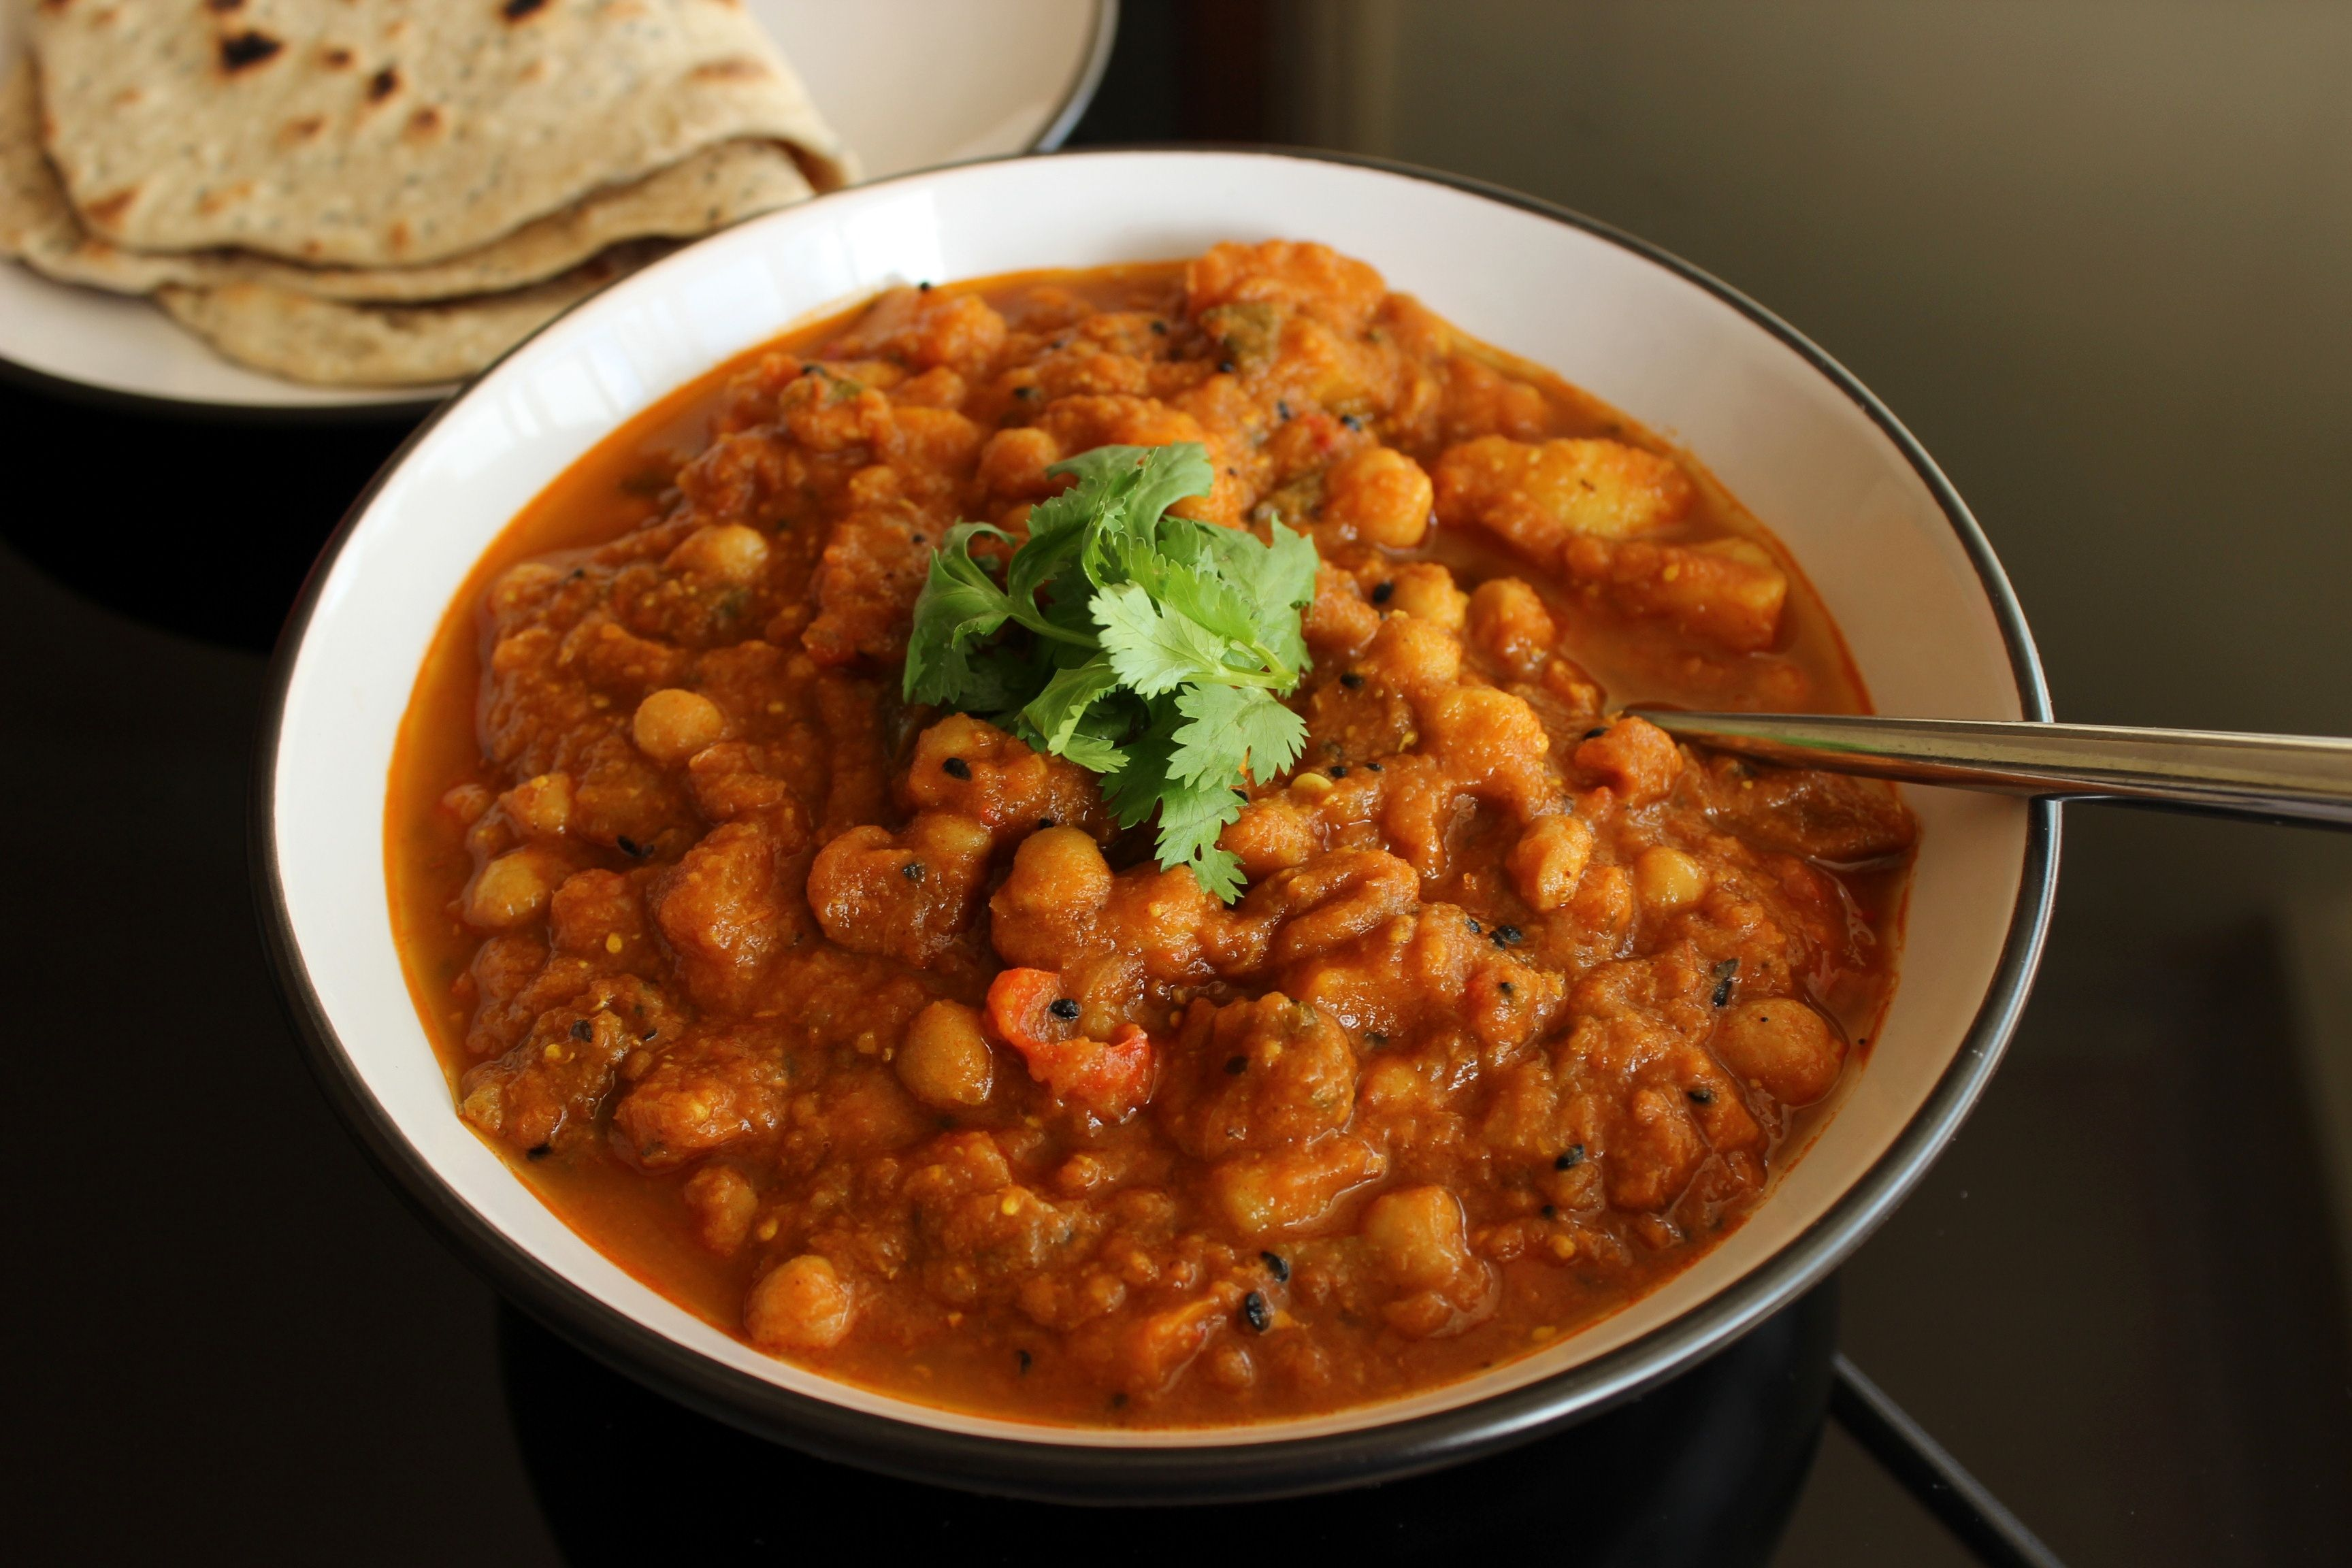 Chana masala chickpea curry curry and chana masala food indian vegetarian chickpea forumfinder Gallery